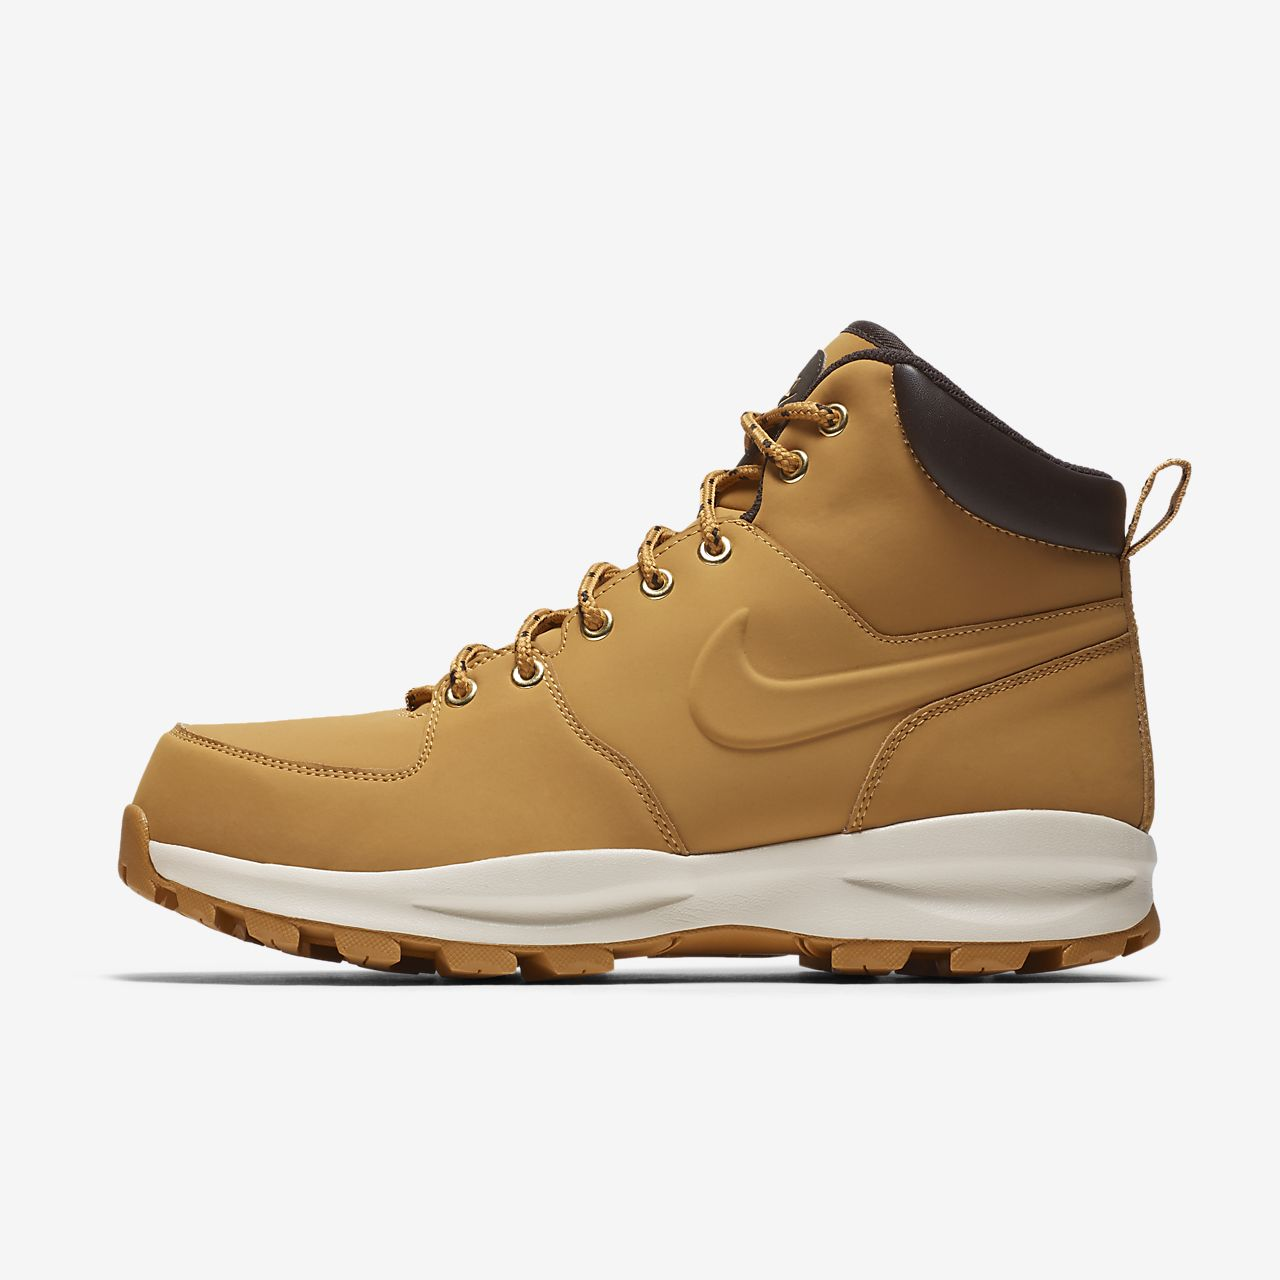 Chaussure Nike Manoa pour Homme